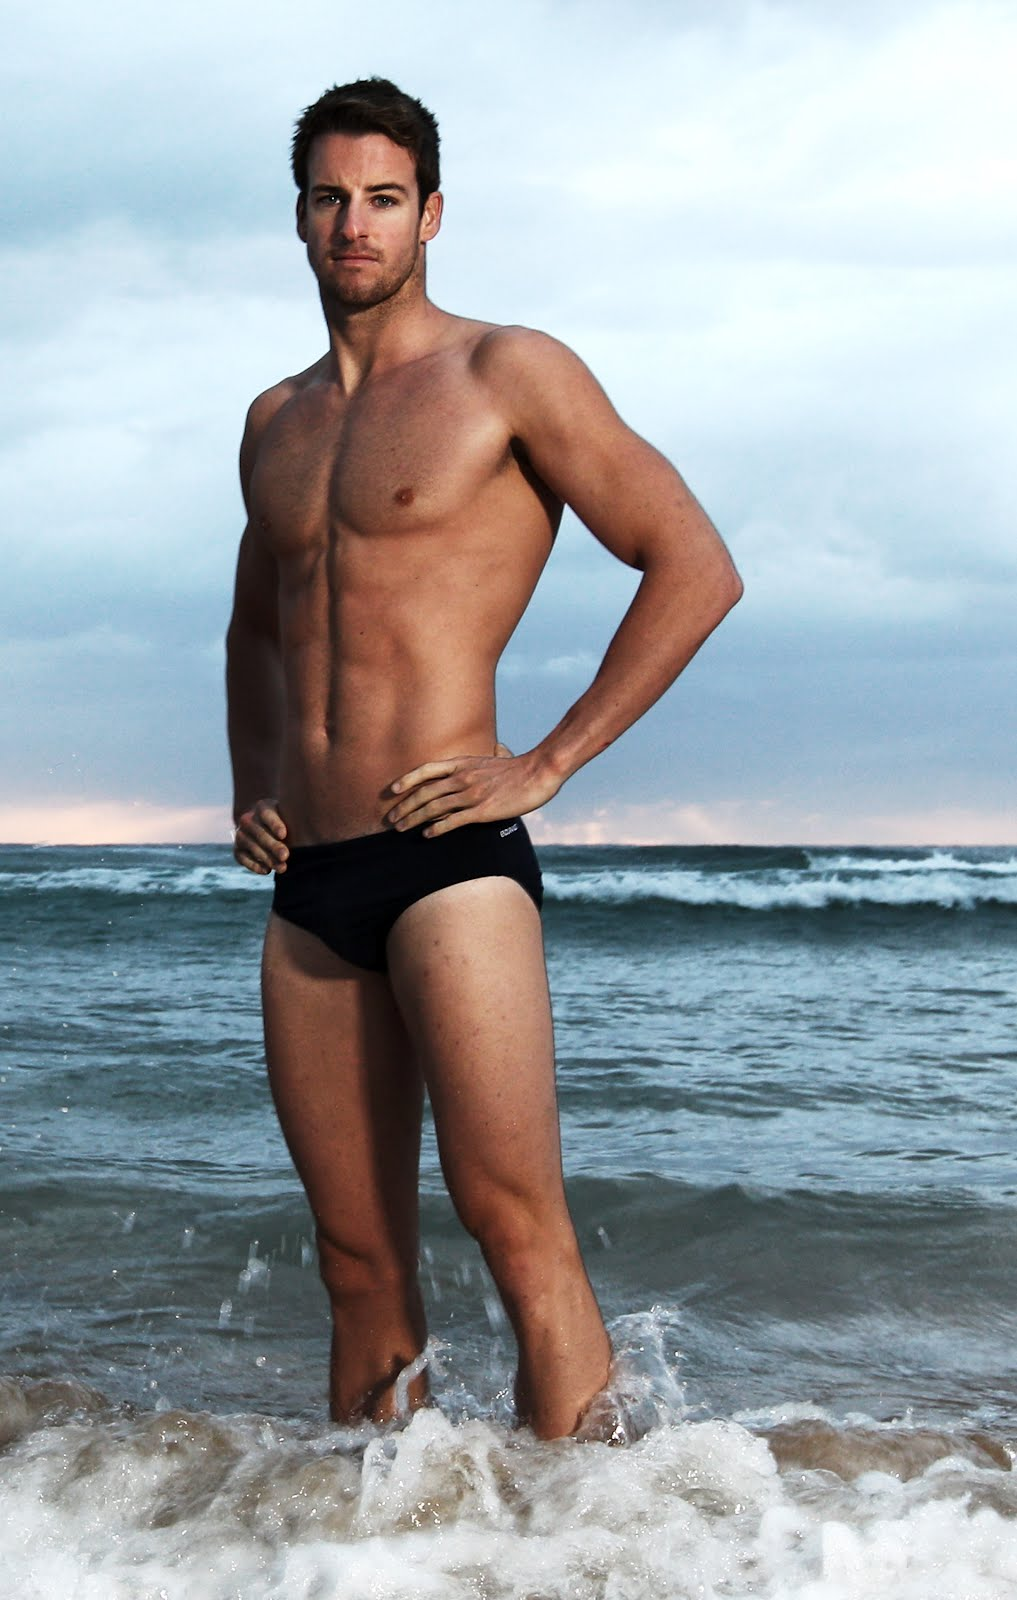 gay swimmer olympic